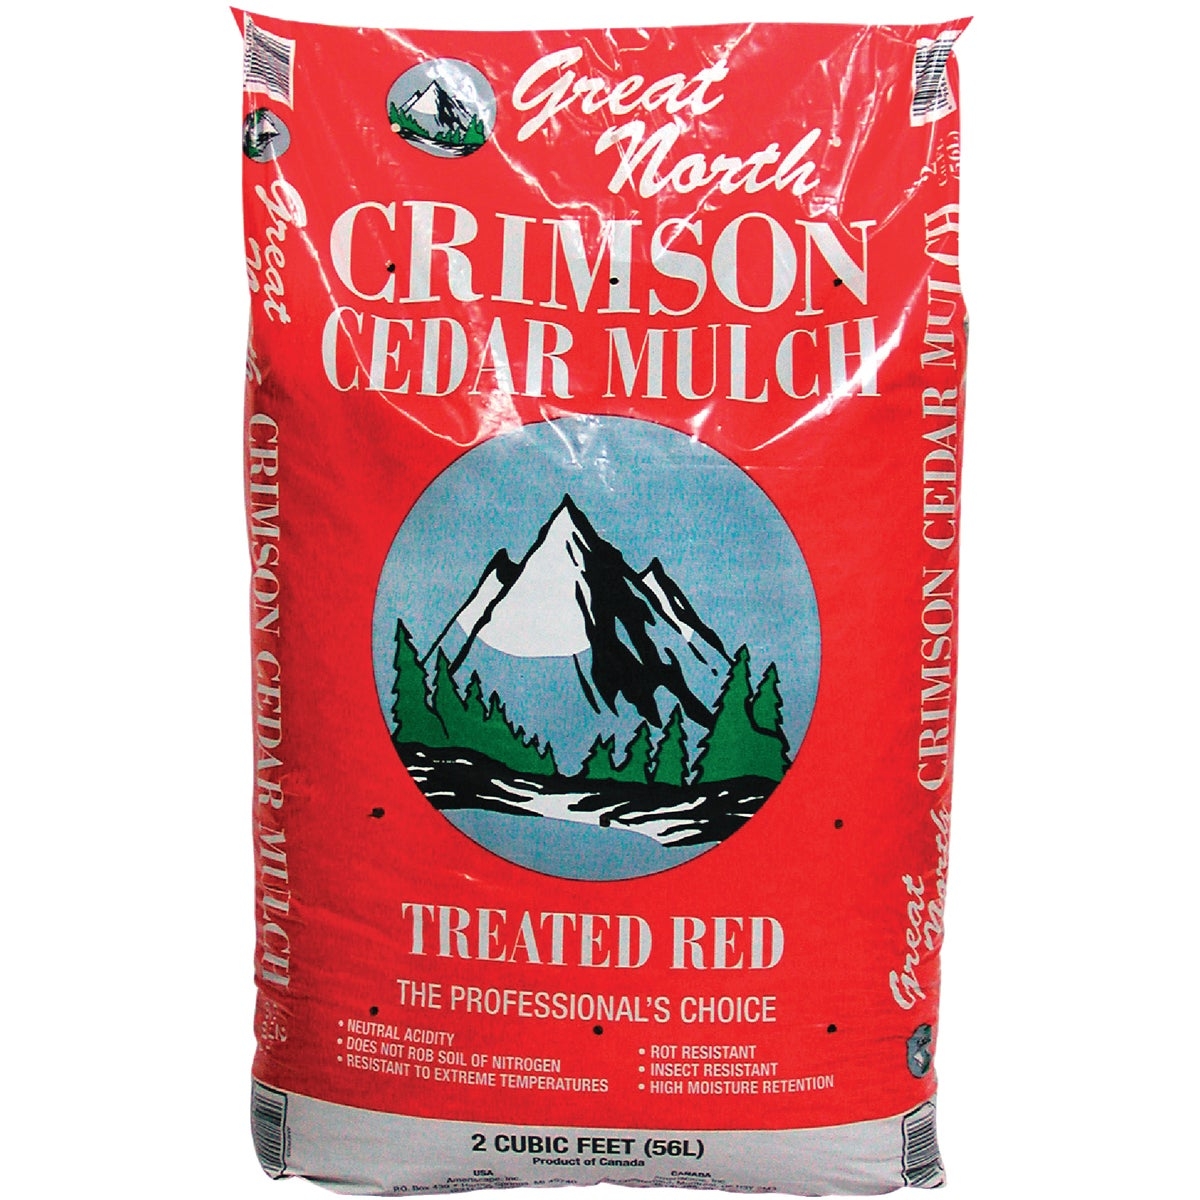 2CU FT RED CEDAR MULCH